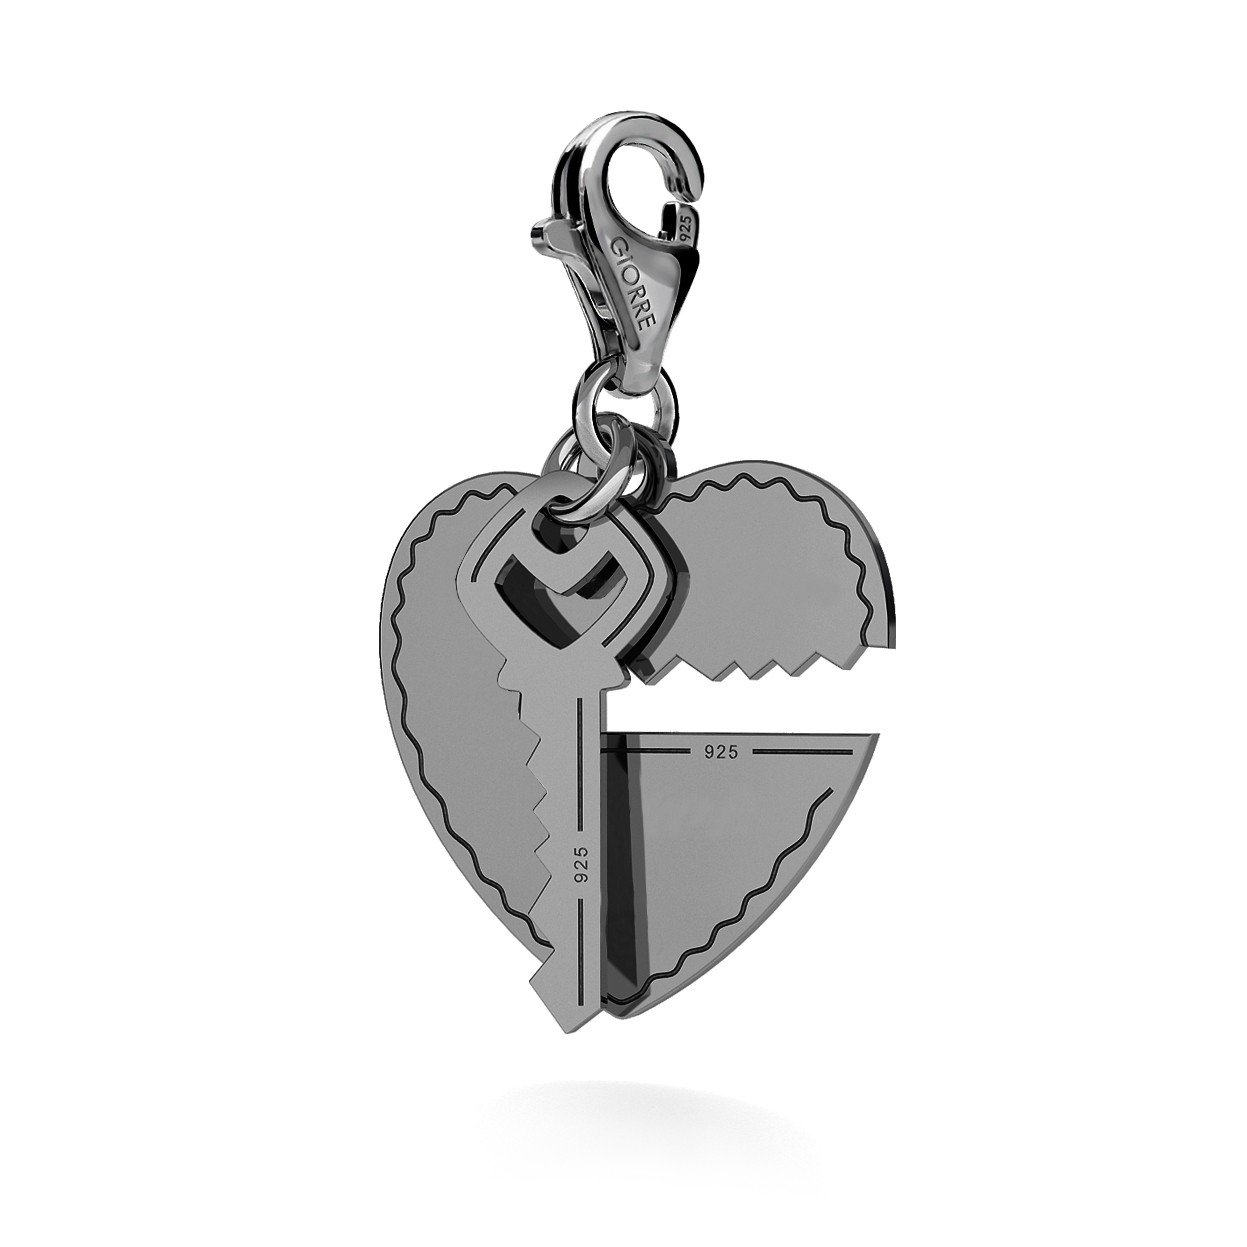 CHARM 108, LOVE HEART WITH KEY, STERLING SILVER (925) RHODIUM OR GOLD PLATED